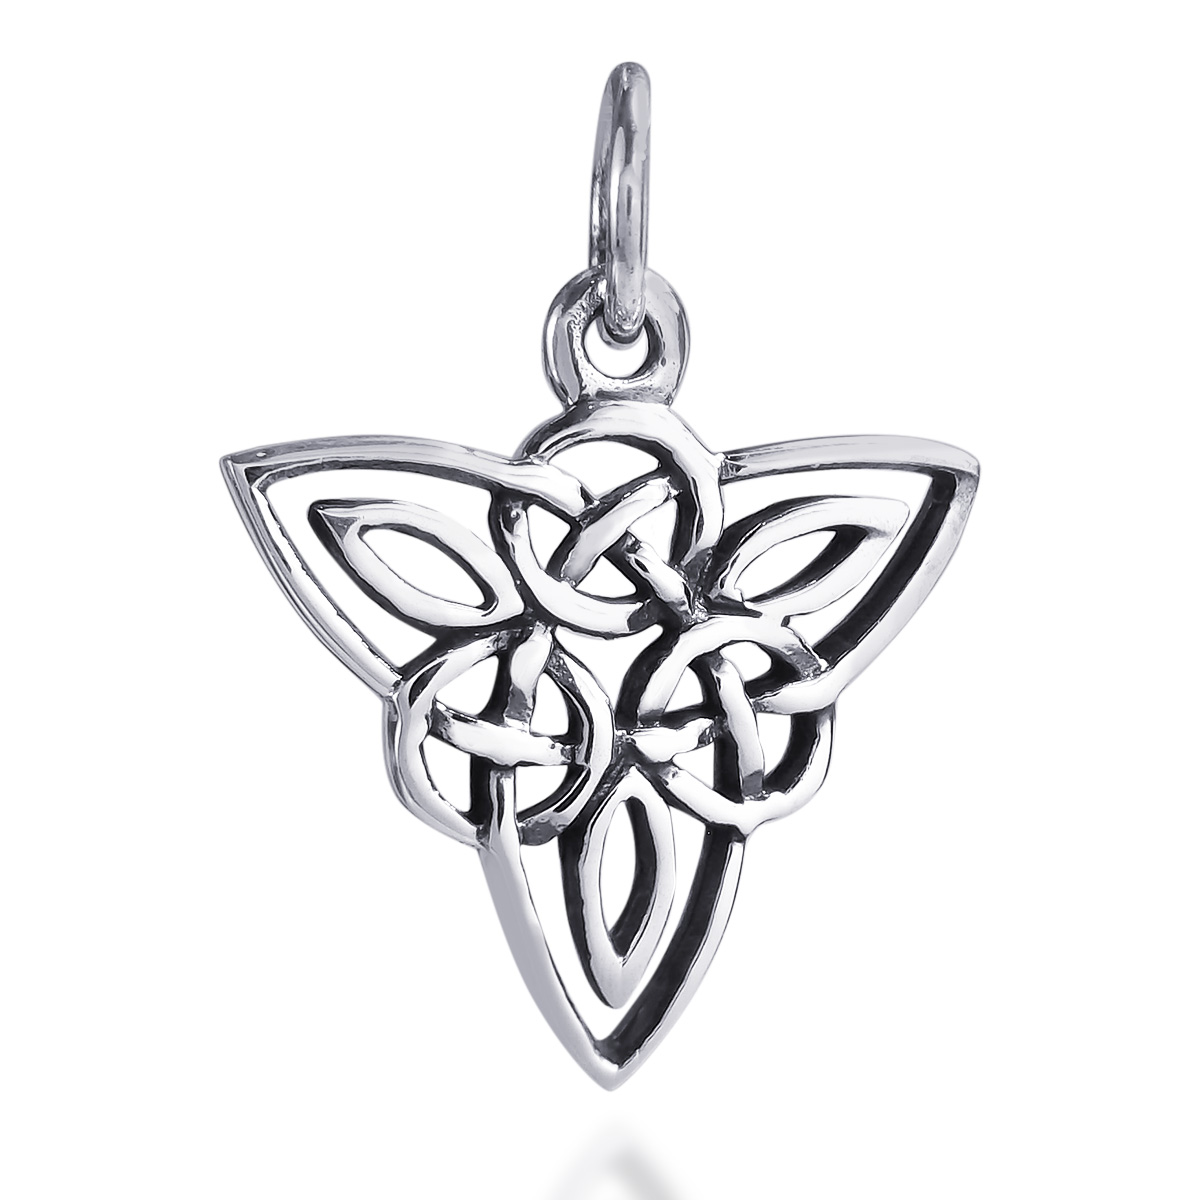 Celtic triquetra knot sterling silver pendant or charm aeravida celtic triquetra knot sterling silver pendant or charm pendants plain celtic triquetra knot sterling silver pendant or charm aloadofball Image collections